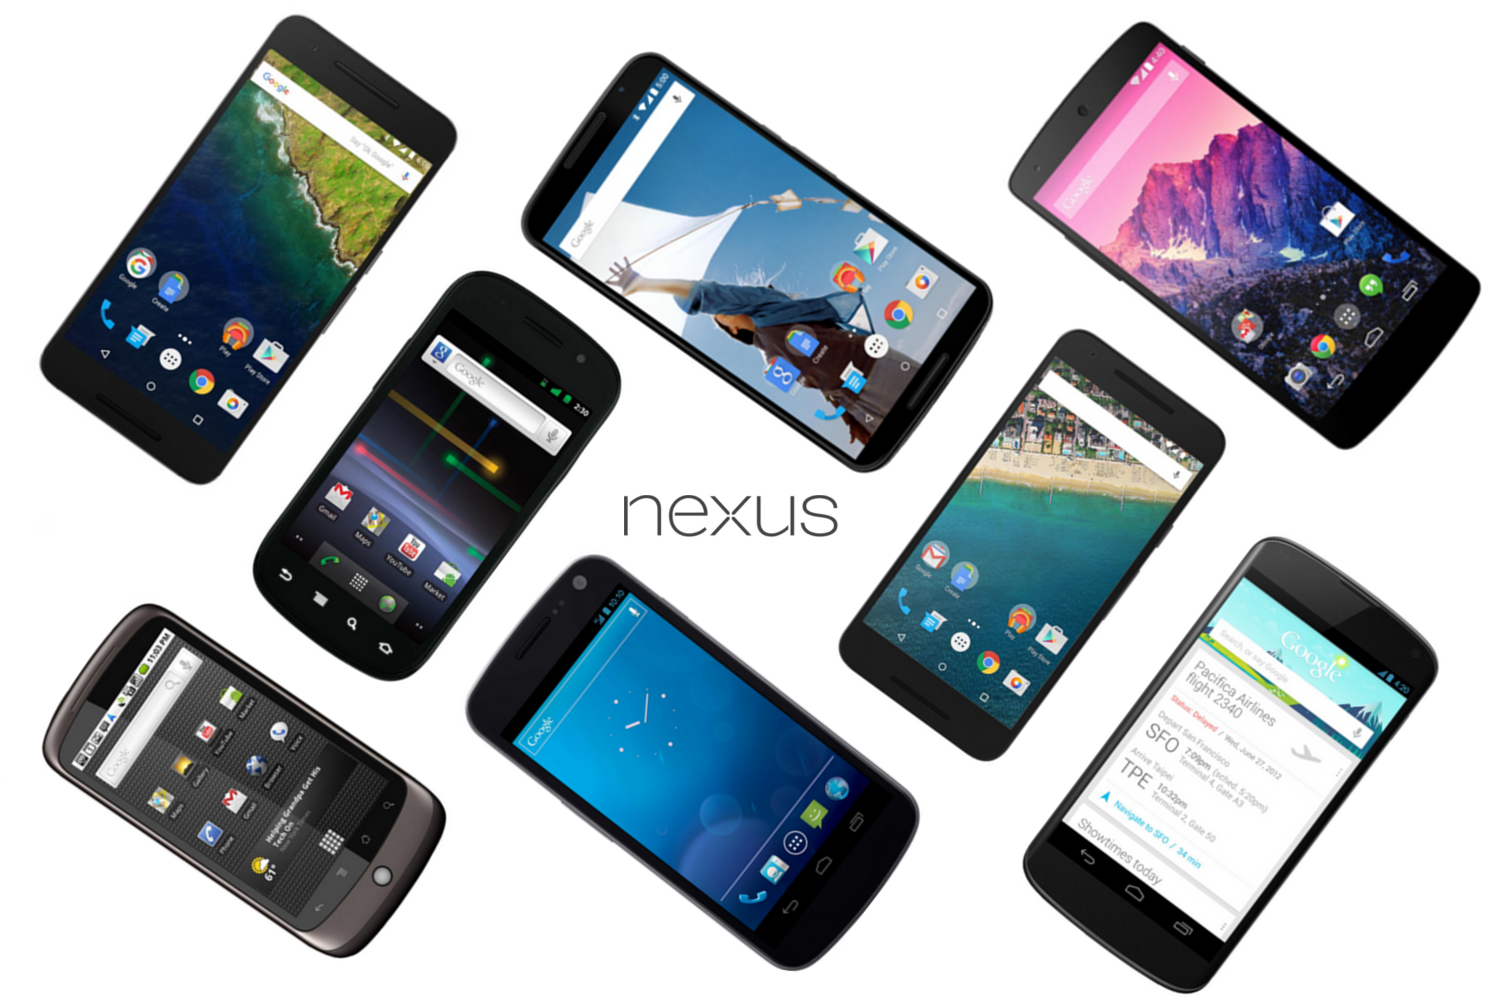 Nexus - A Series To Remember